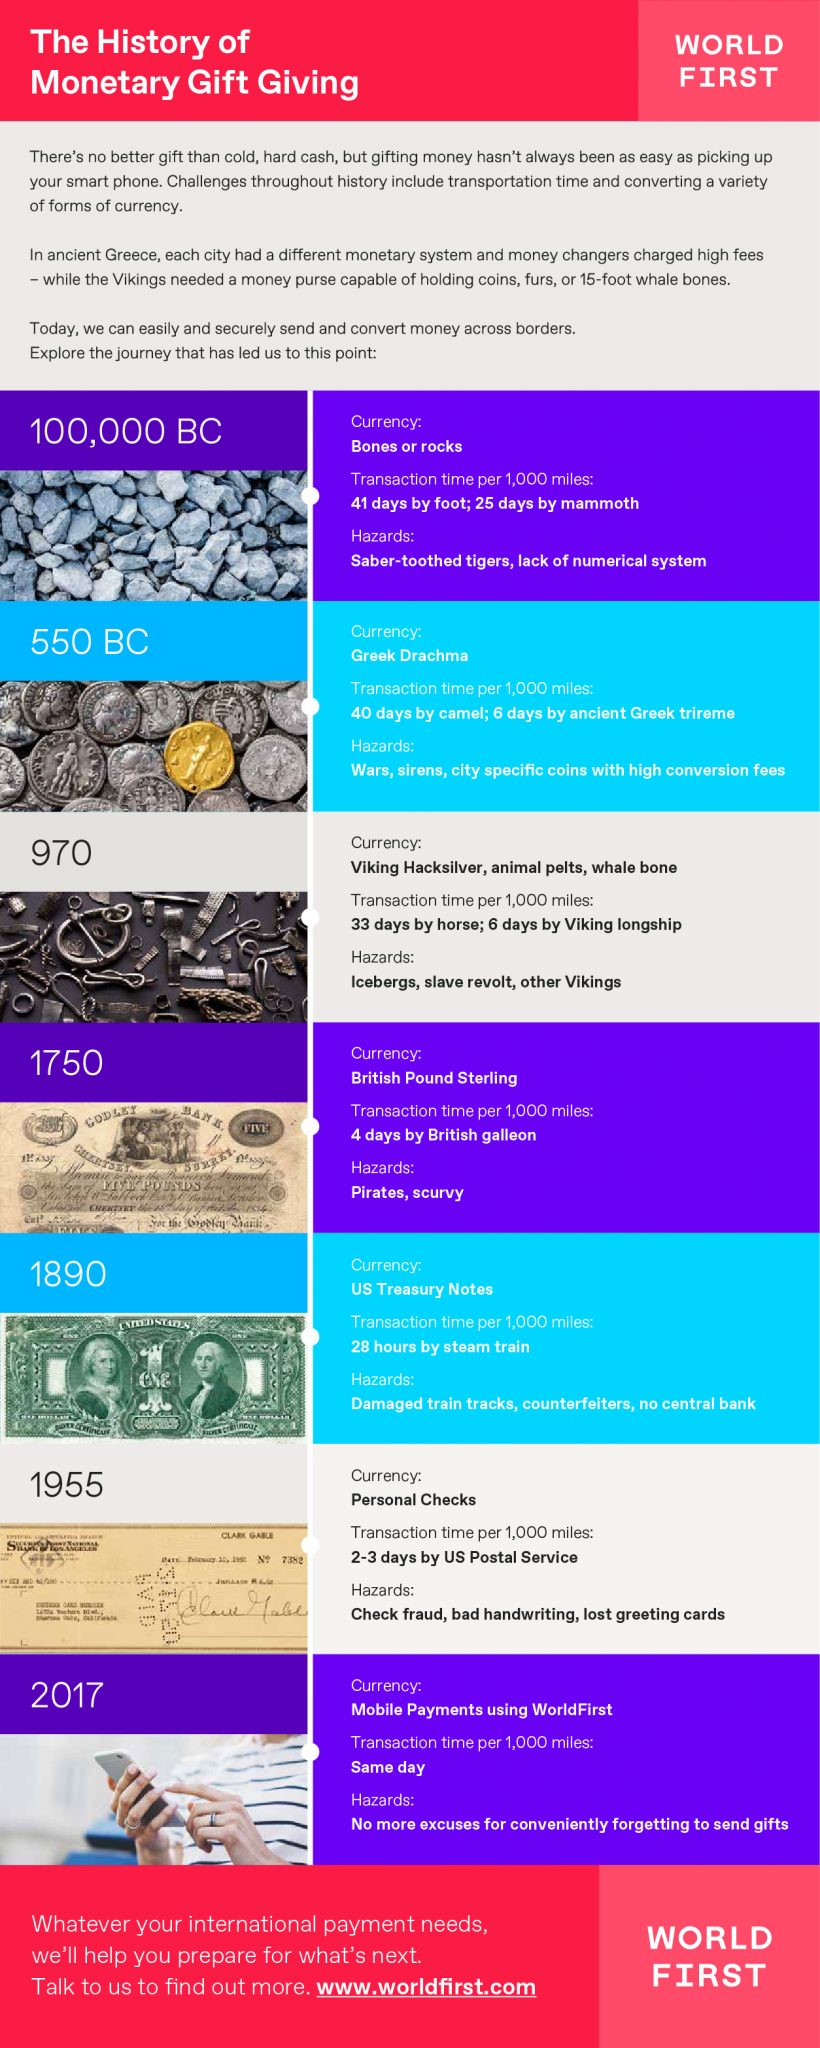 worldfirst_infographic_history_of_monetary_gift_giving